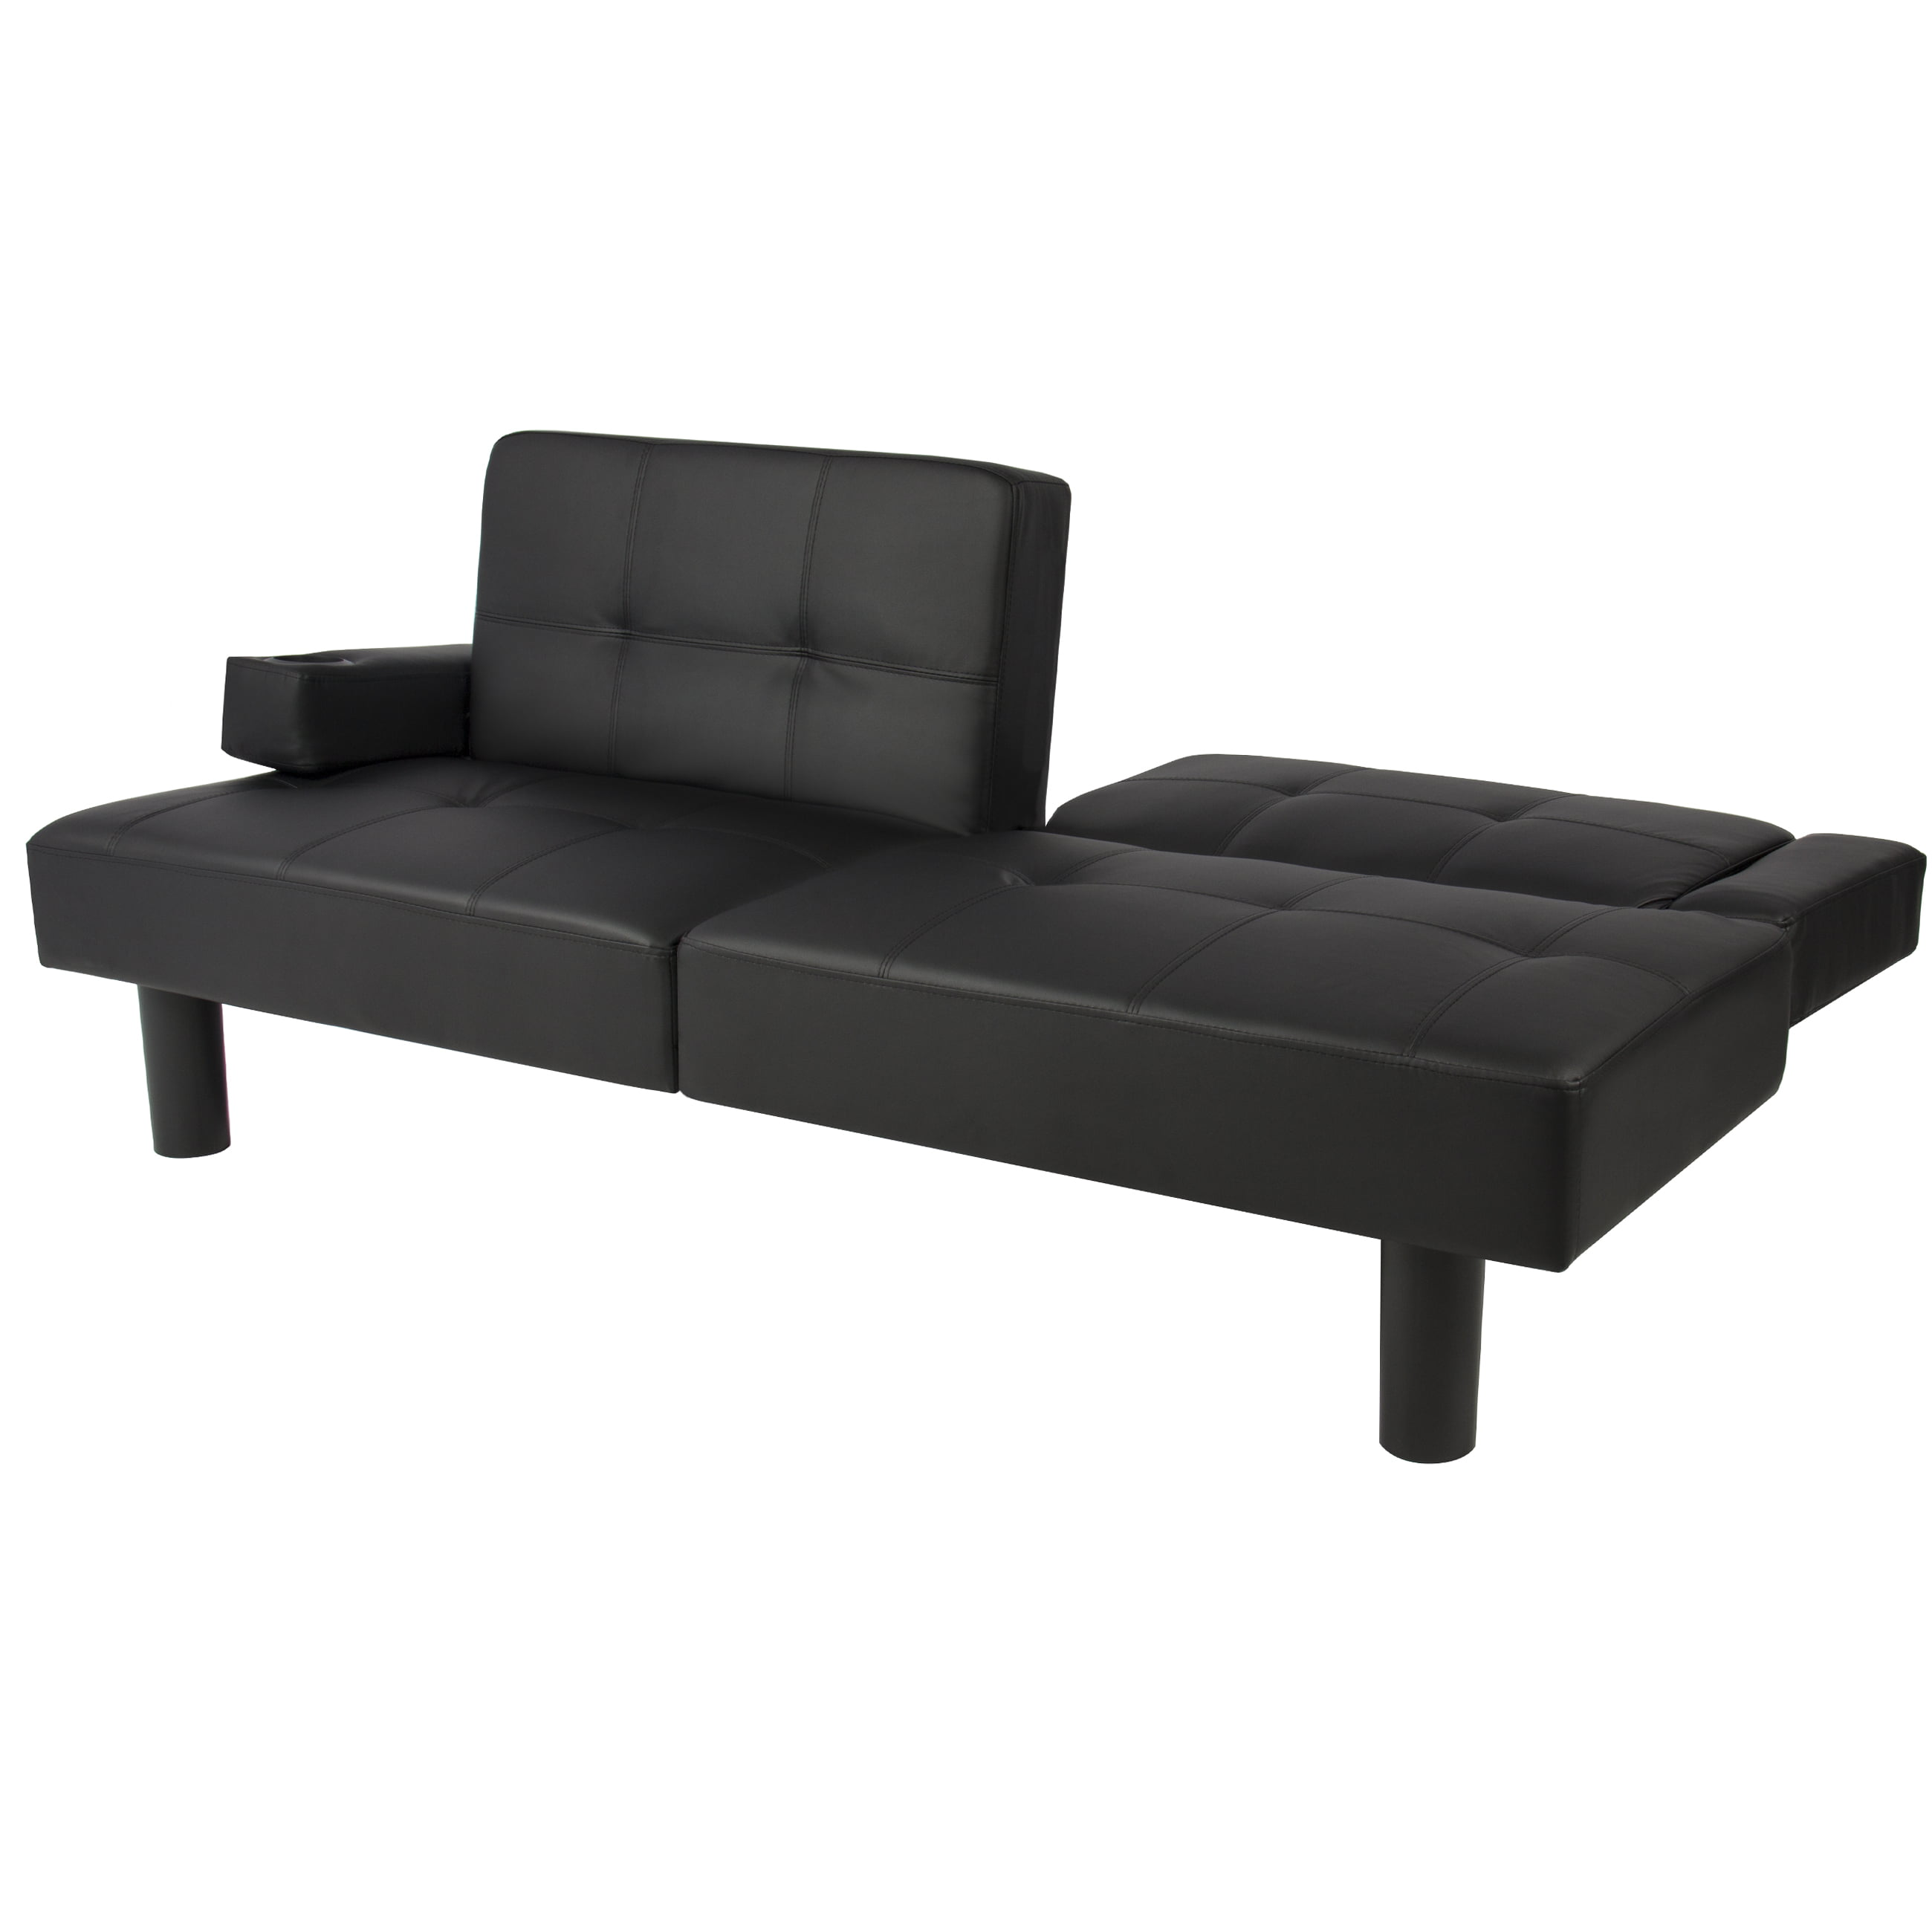 Futon Sofa Beds Under 200 Image Fatarecom